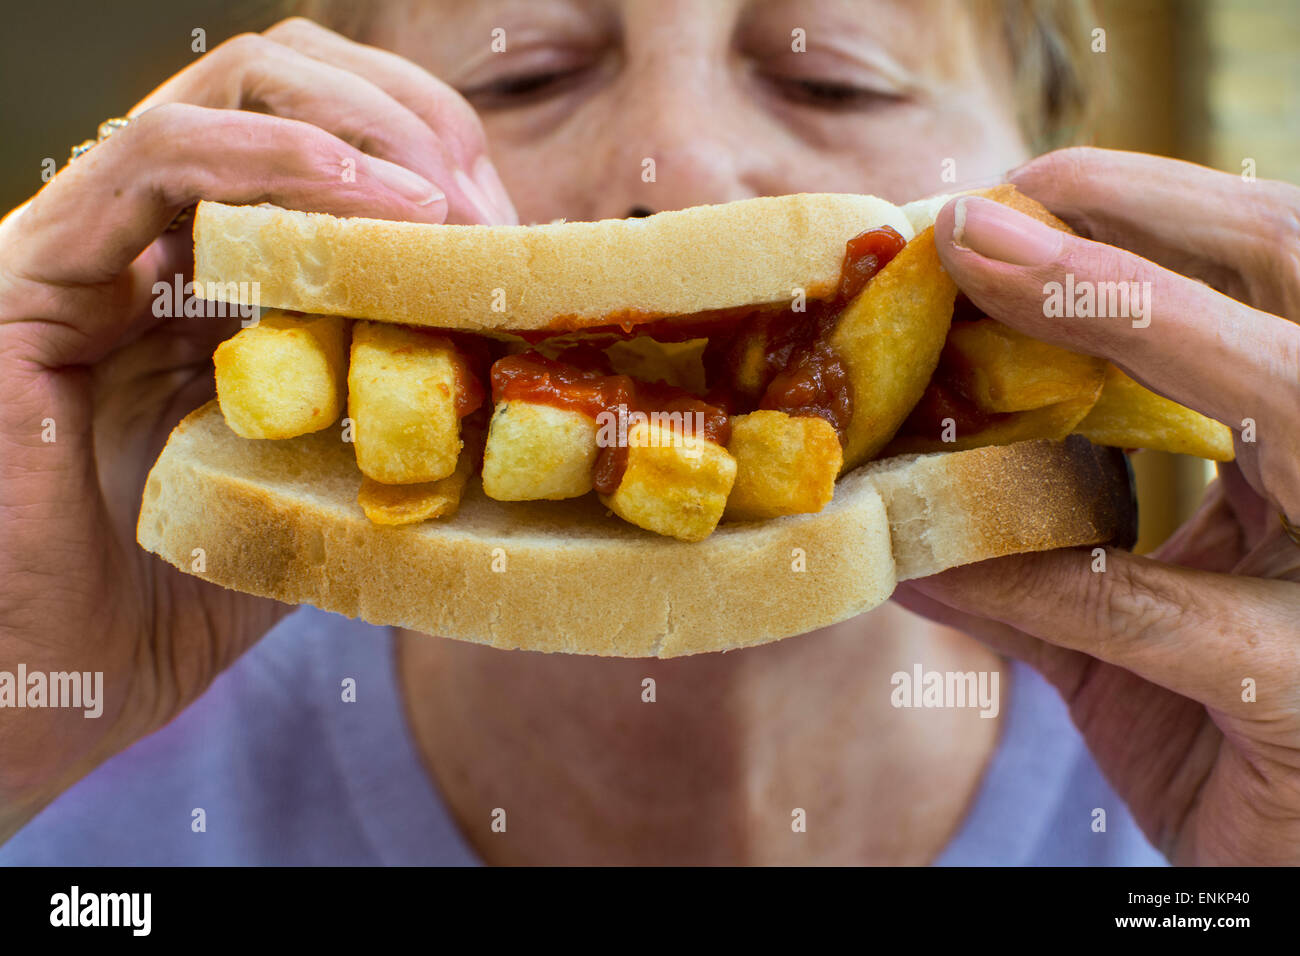 A potato chips sandwich, commonly known as a chip butty in the UK being eaten by a woman - Stock Image